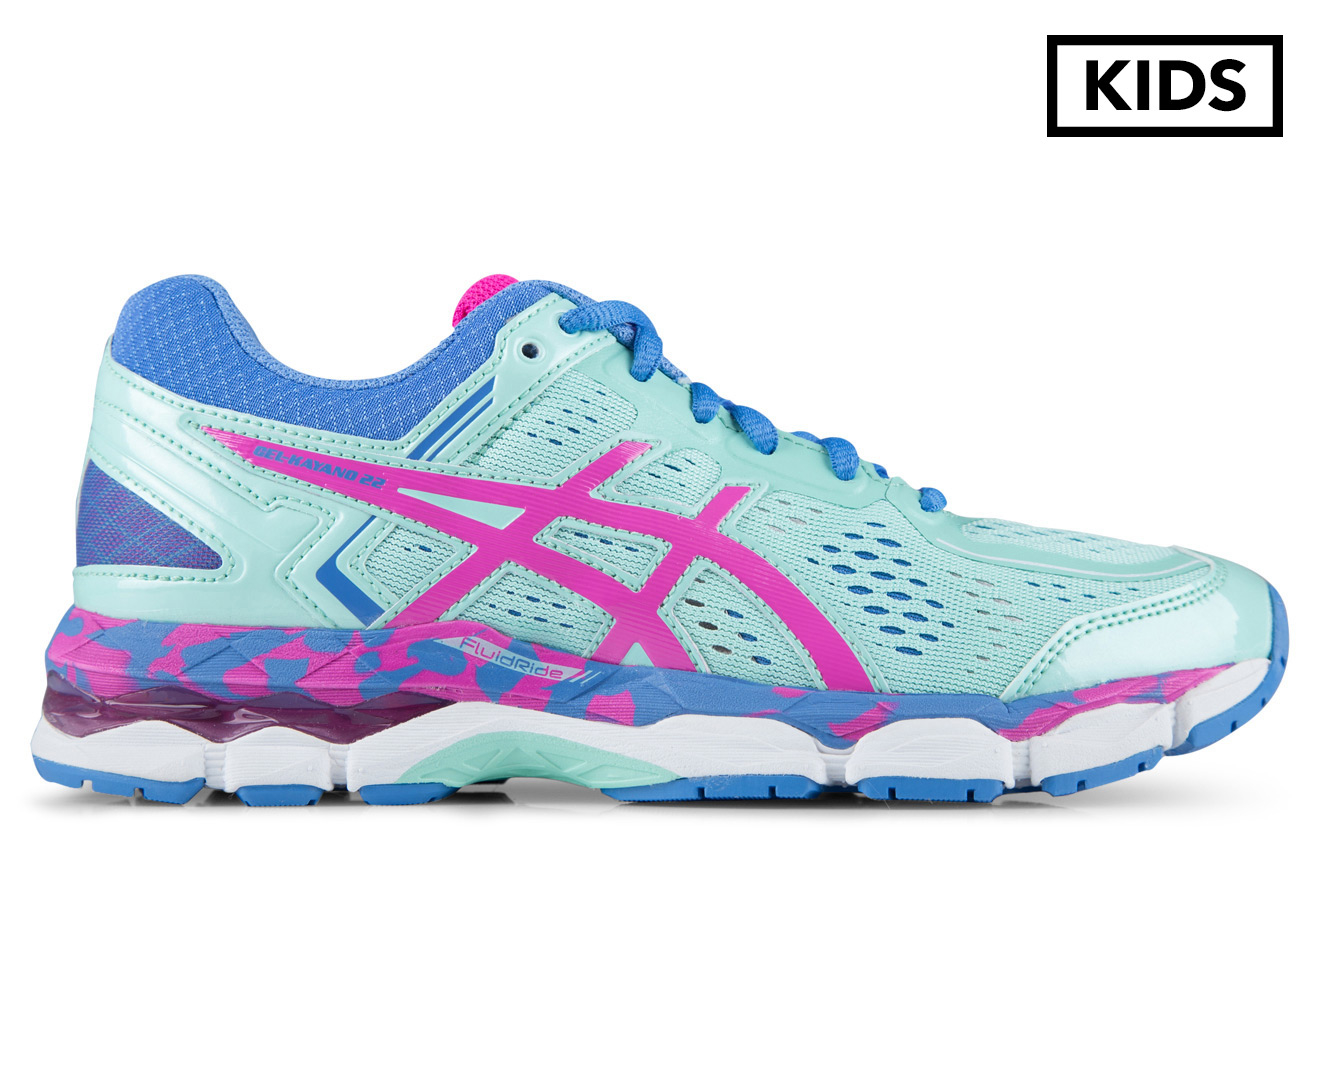 asics kayano 22 kids